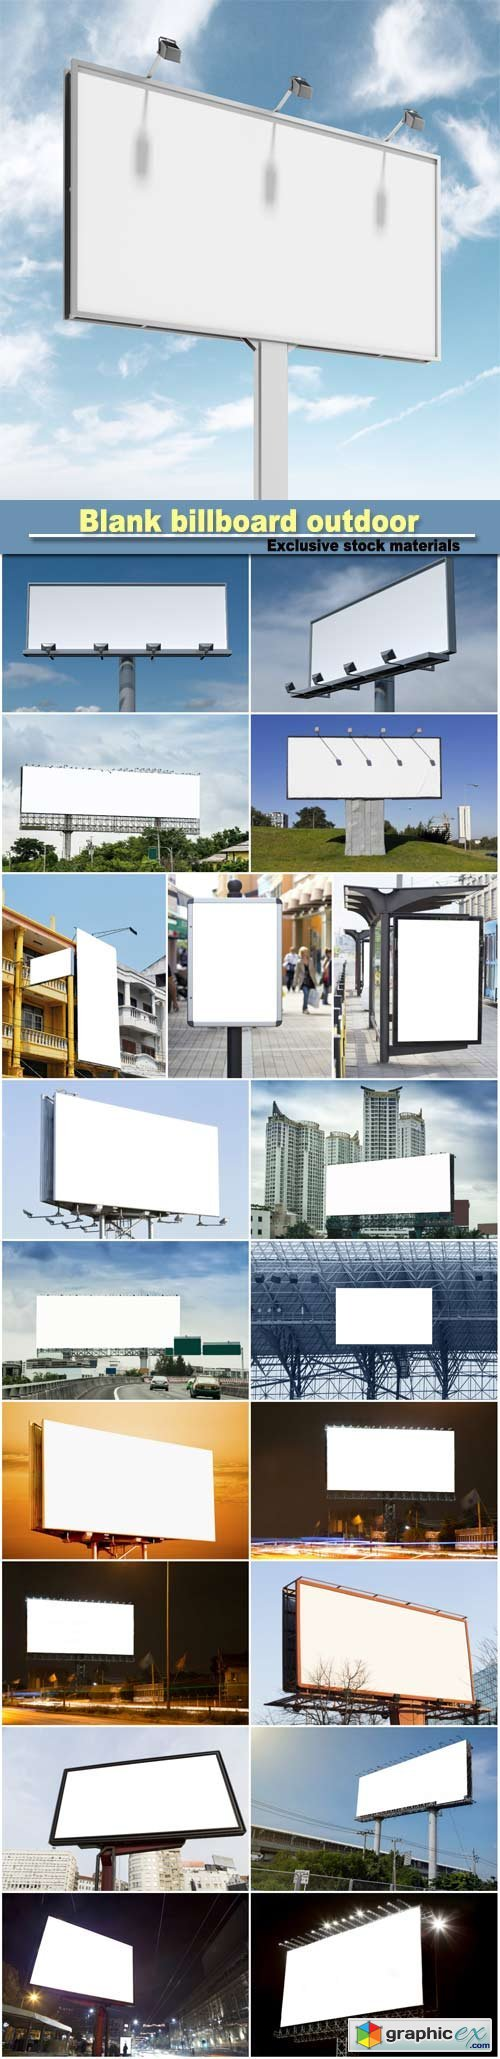 Blank billboard outdoor for advertising poster for advertisement concept